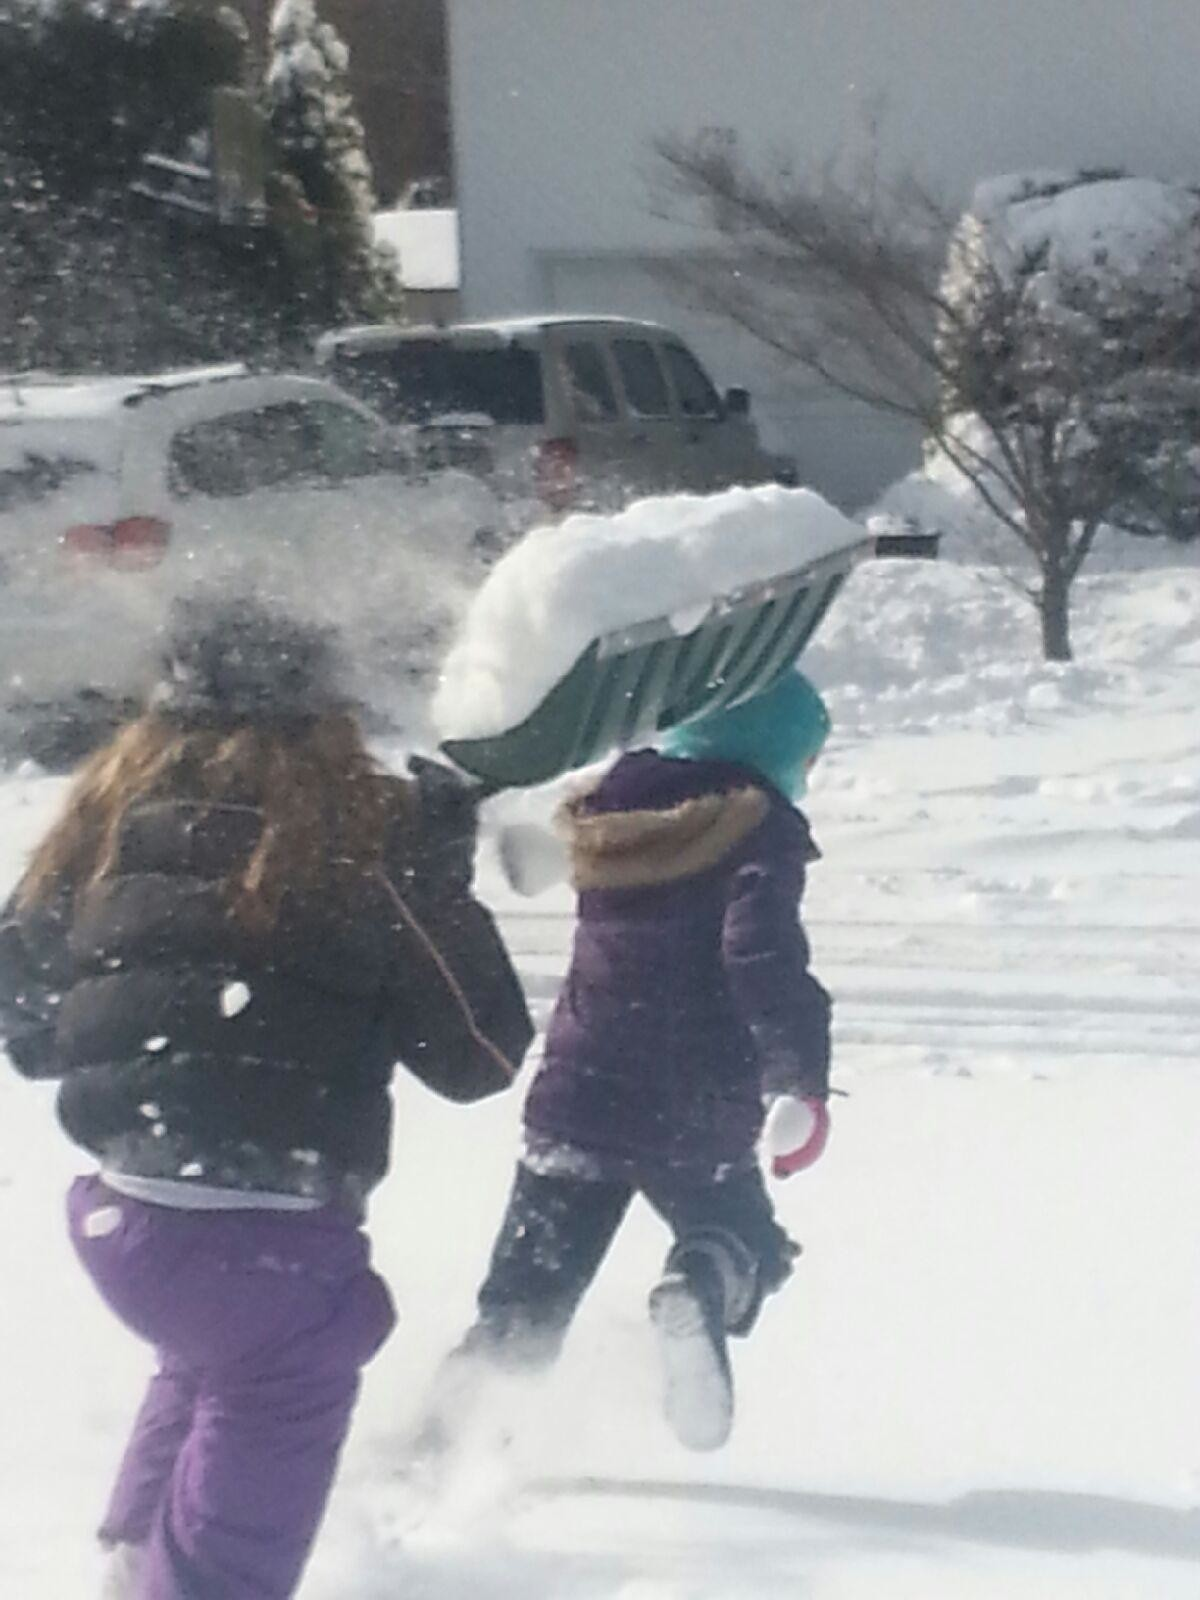 Abigail Pallotta ran for her life as her sister Alyssa tried to douse her with snow